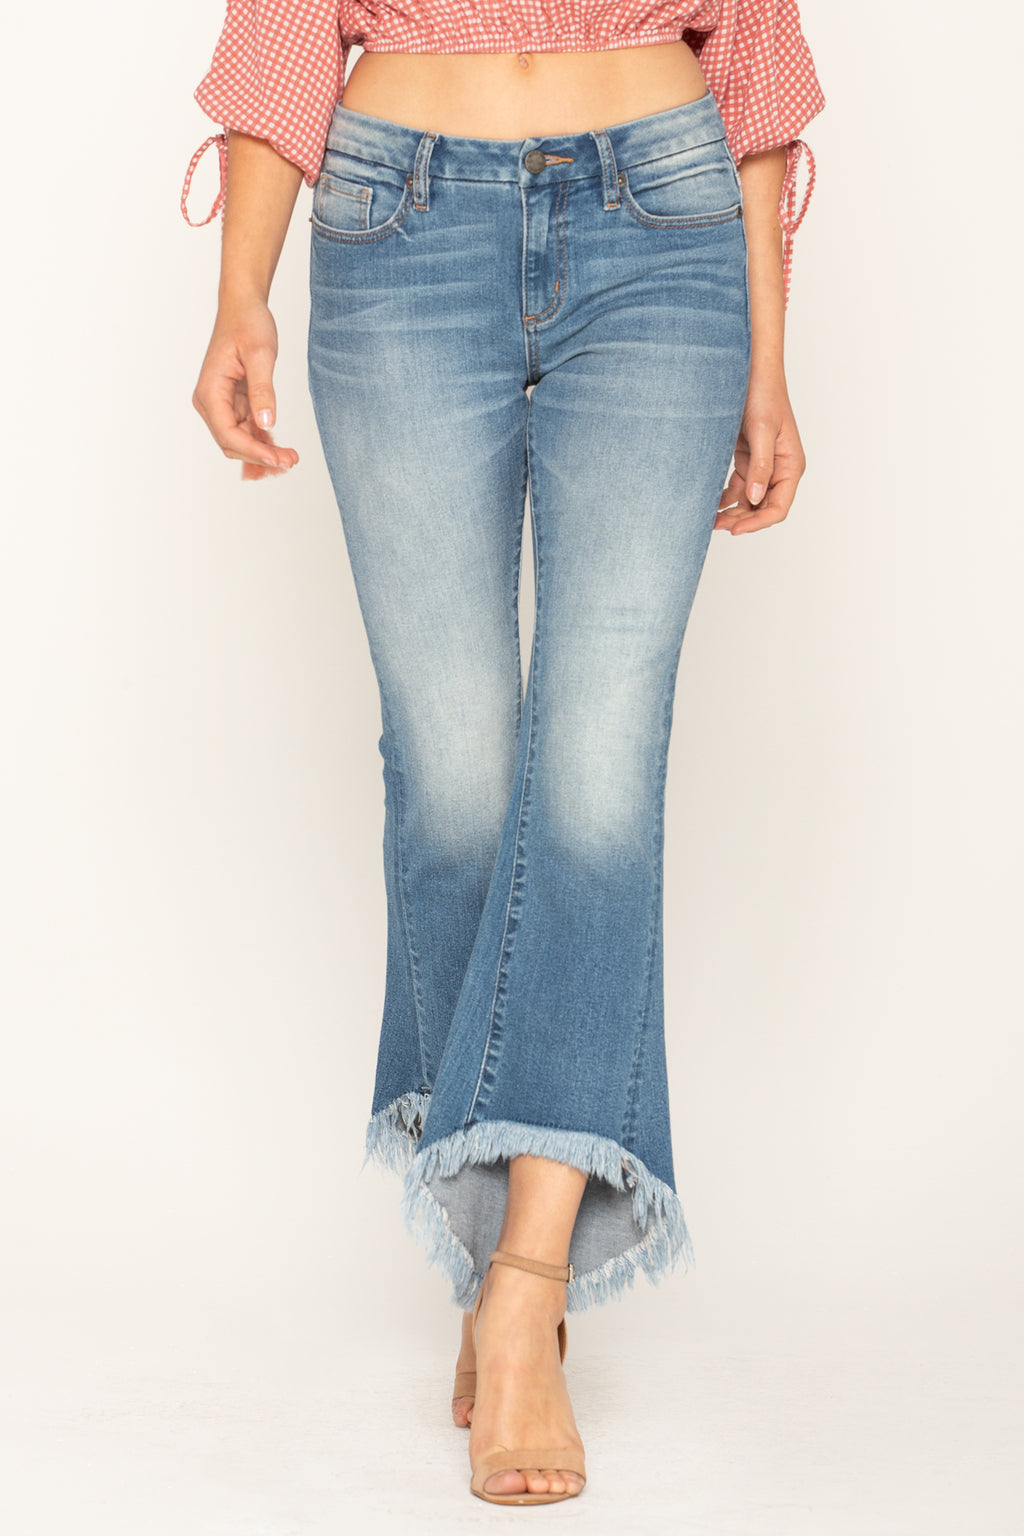 a7c8ec50122 LIVING IN PARADISE CROP FLARE JEANS